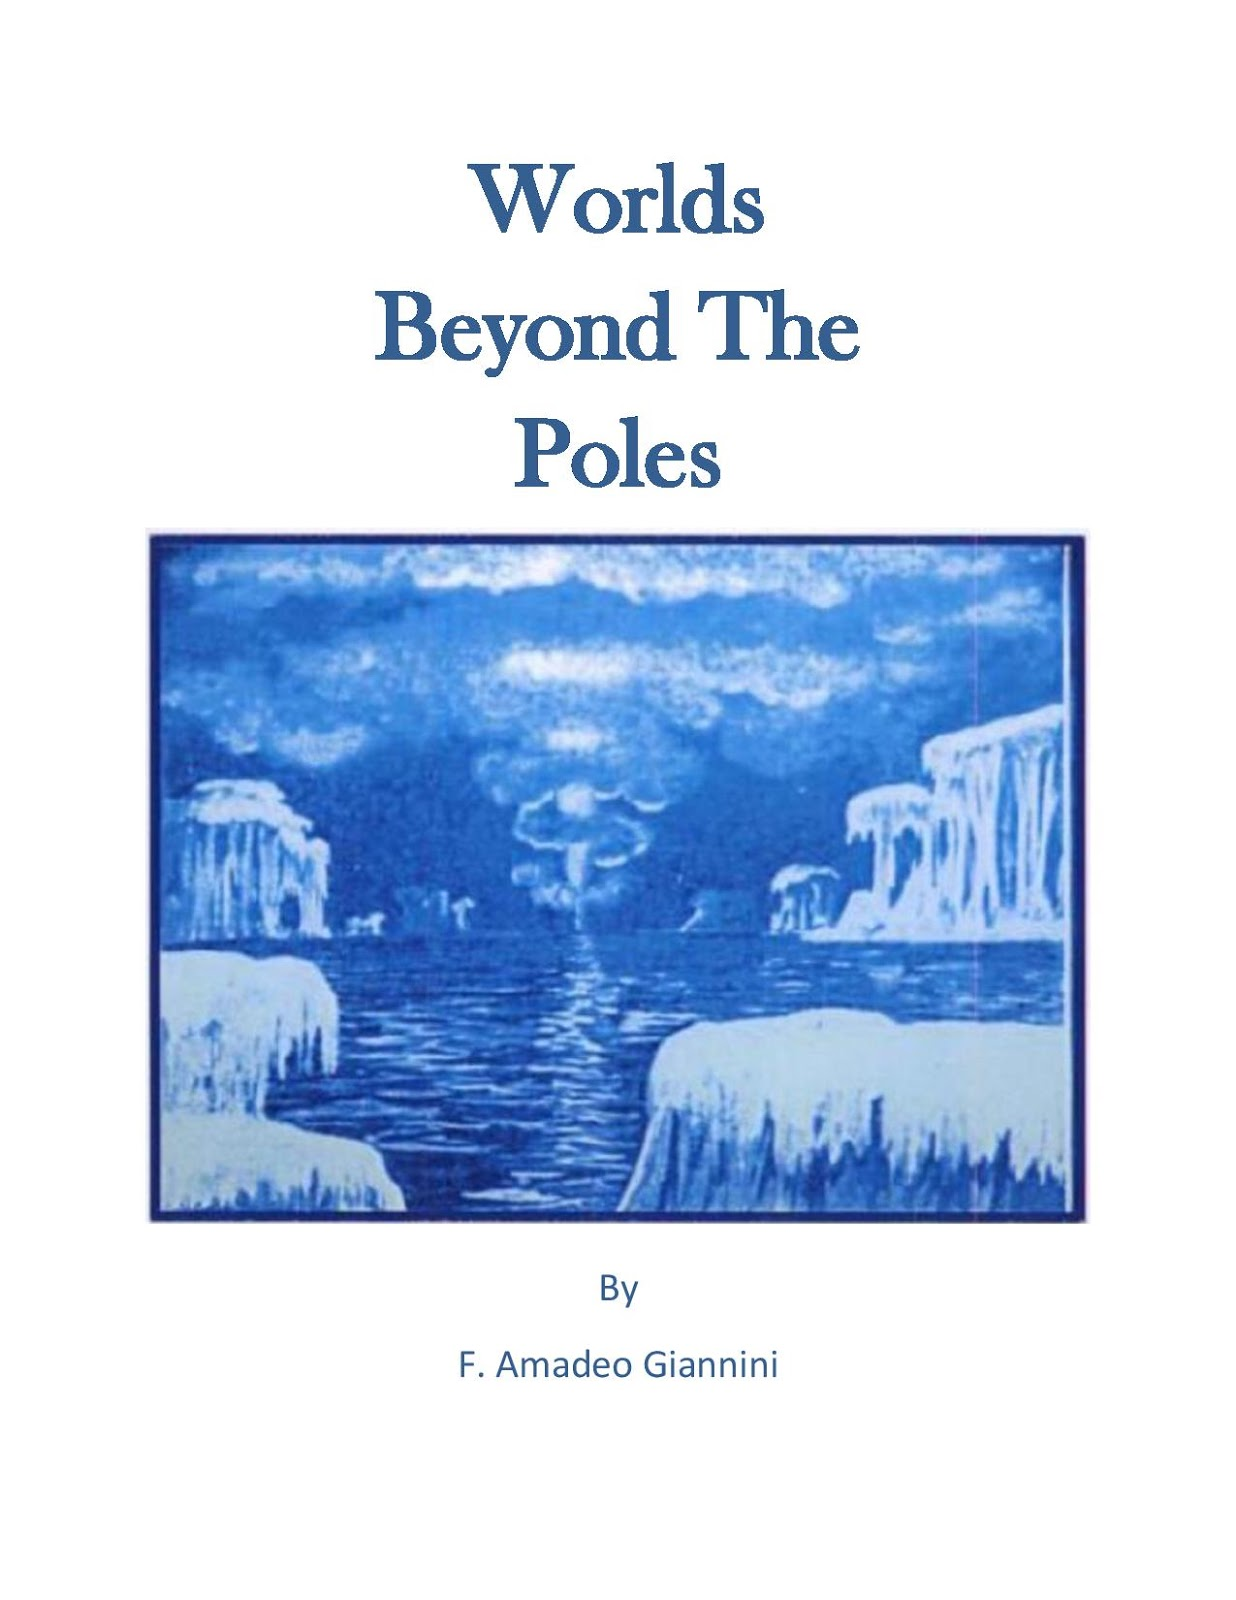 WORLDS BEYOND THE POLES By F. Amadeo Giannini  Worlds_beyond_the_poles_3-page-001